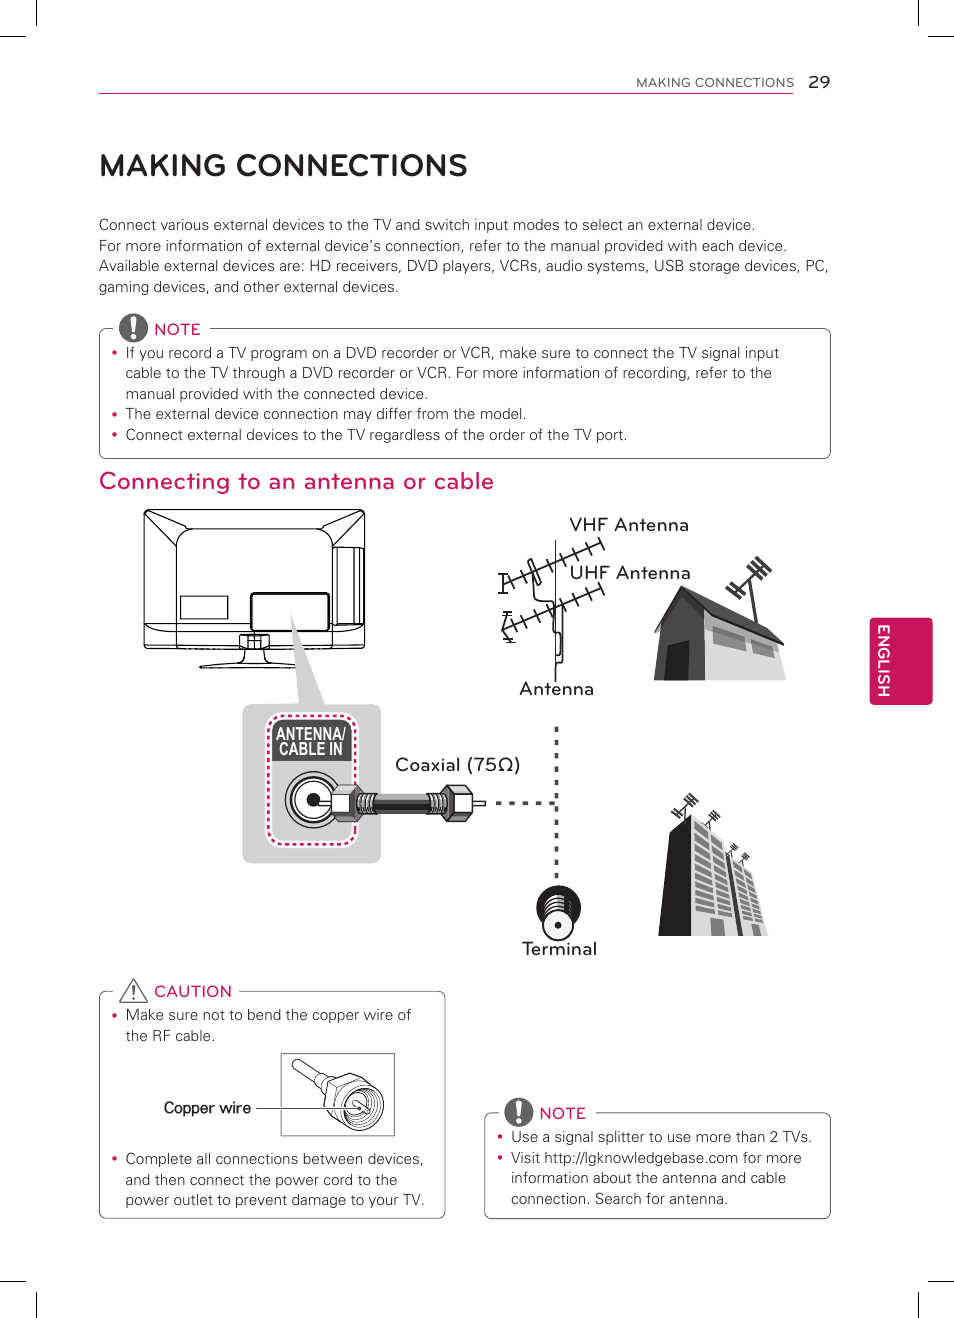 hight resolution of making connections connecting to an antenna or cable lg 32cs460 user manual page 29 44